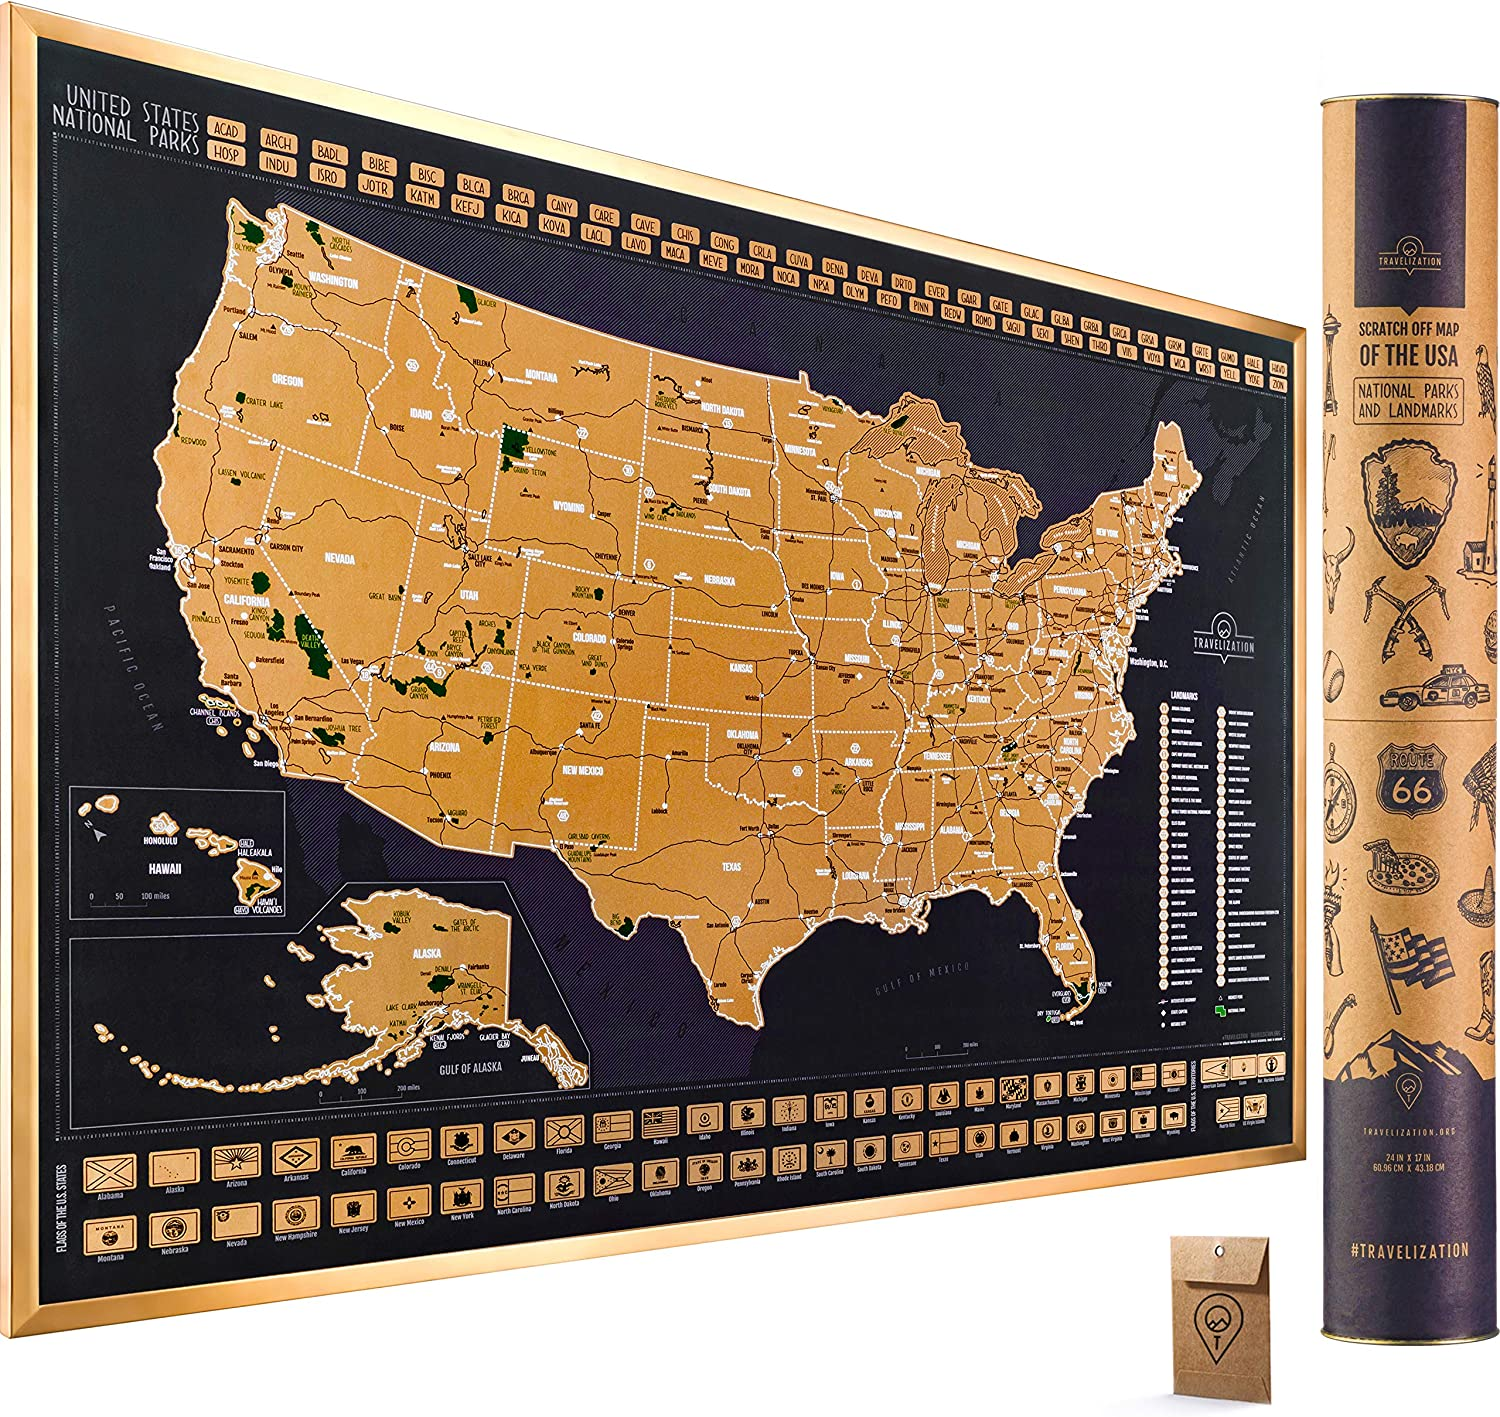 Scratch Off Map of The United States National Parks - 24x17 Scratch Off USA Map Poster with National Parks, Landmarks, Highest Peaks, and State Flags - USA Scratch Off Map for Outdoor Enthusiasts